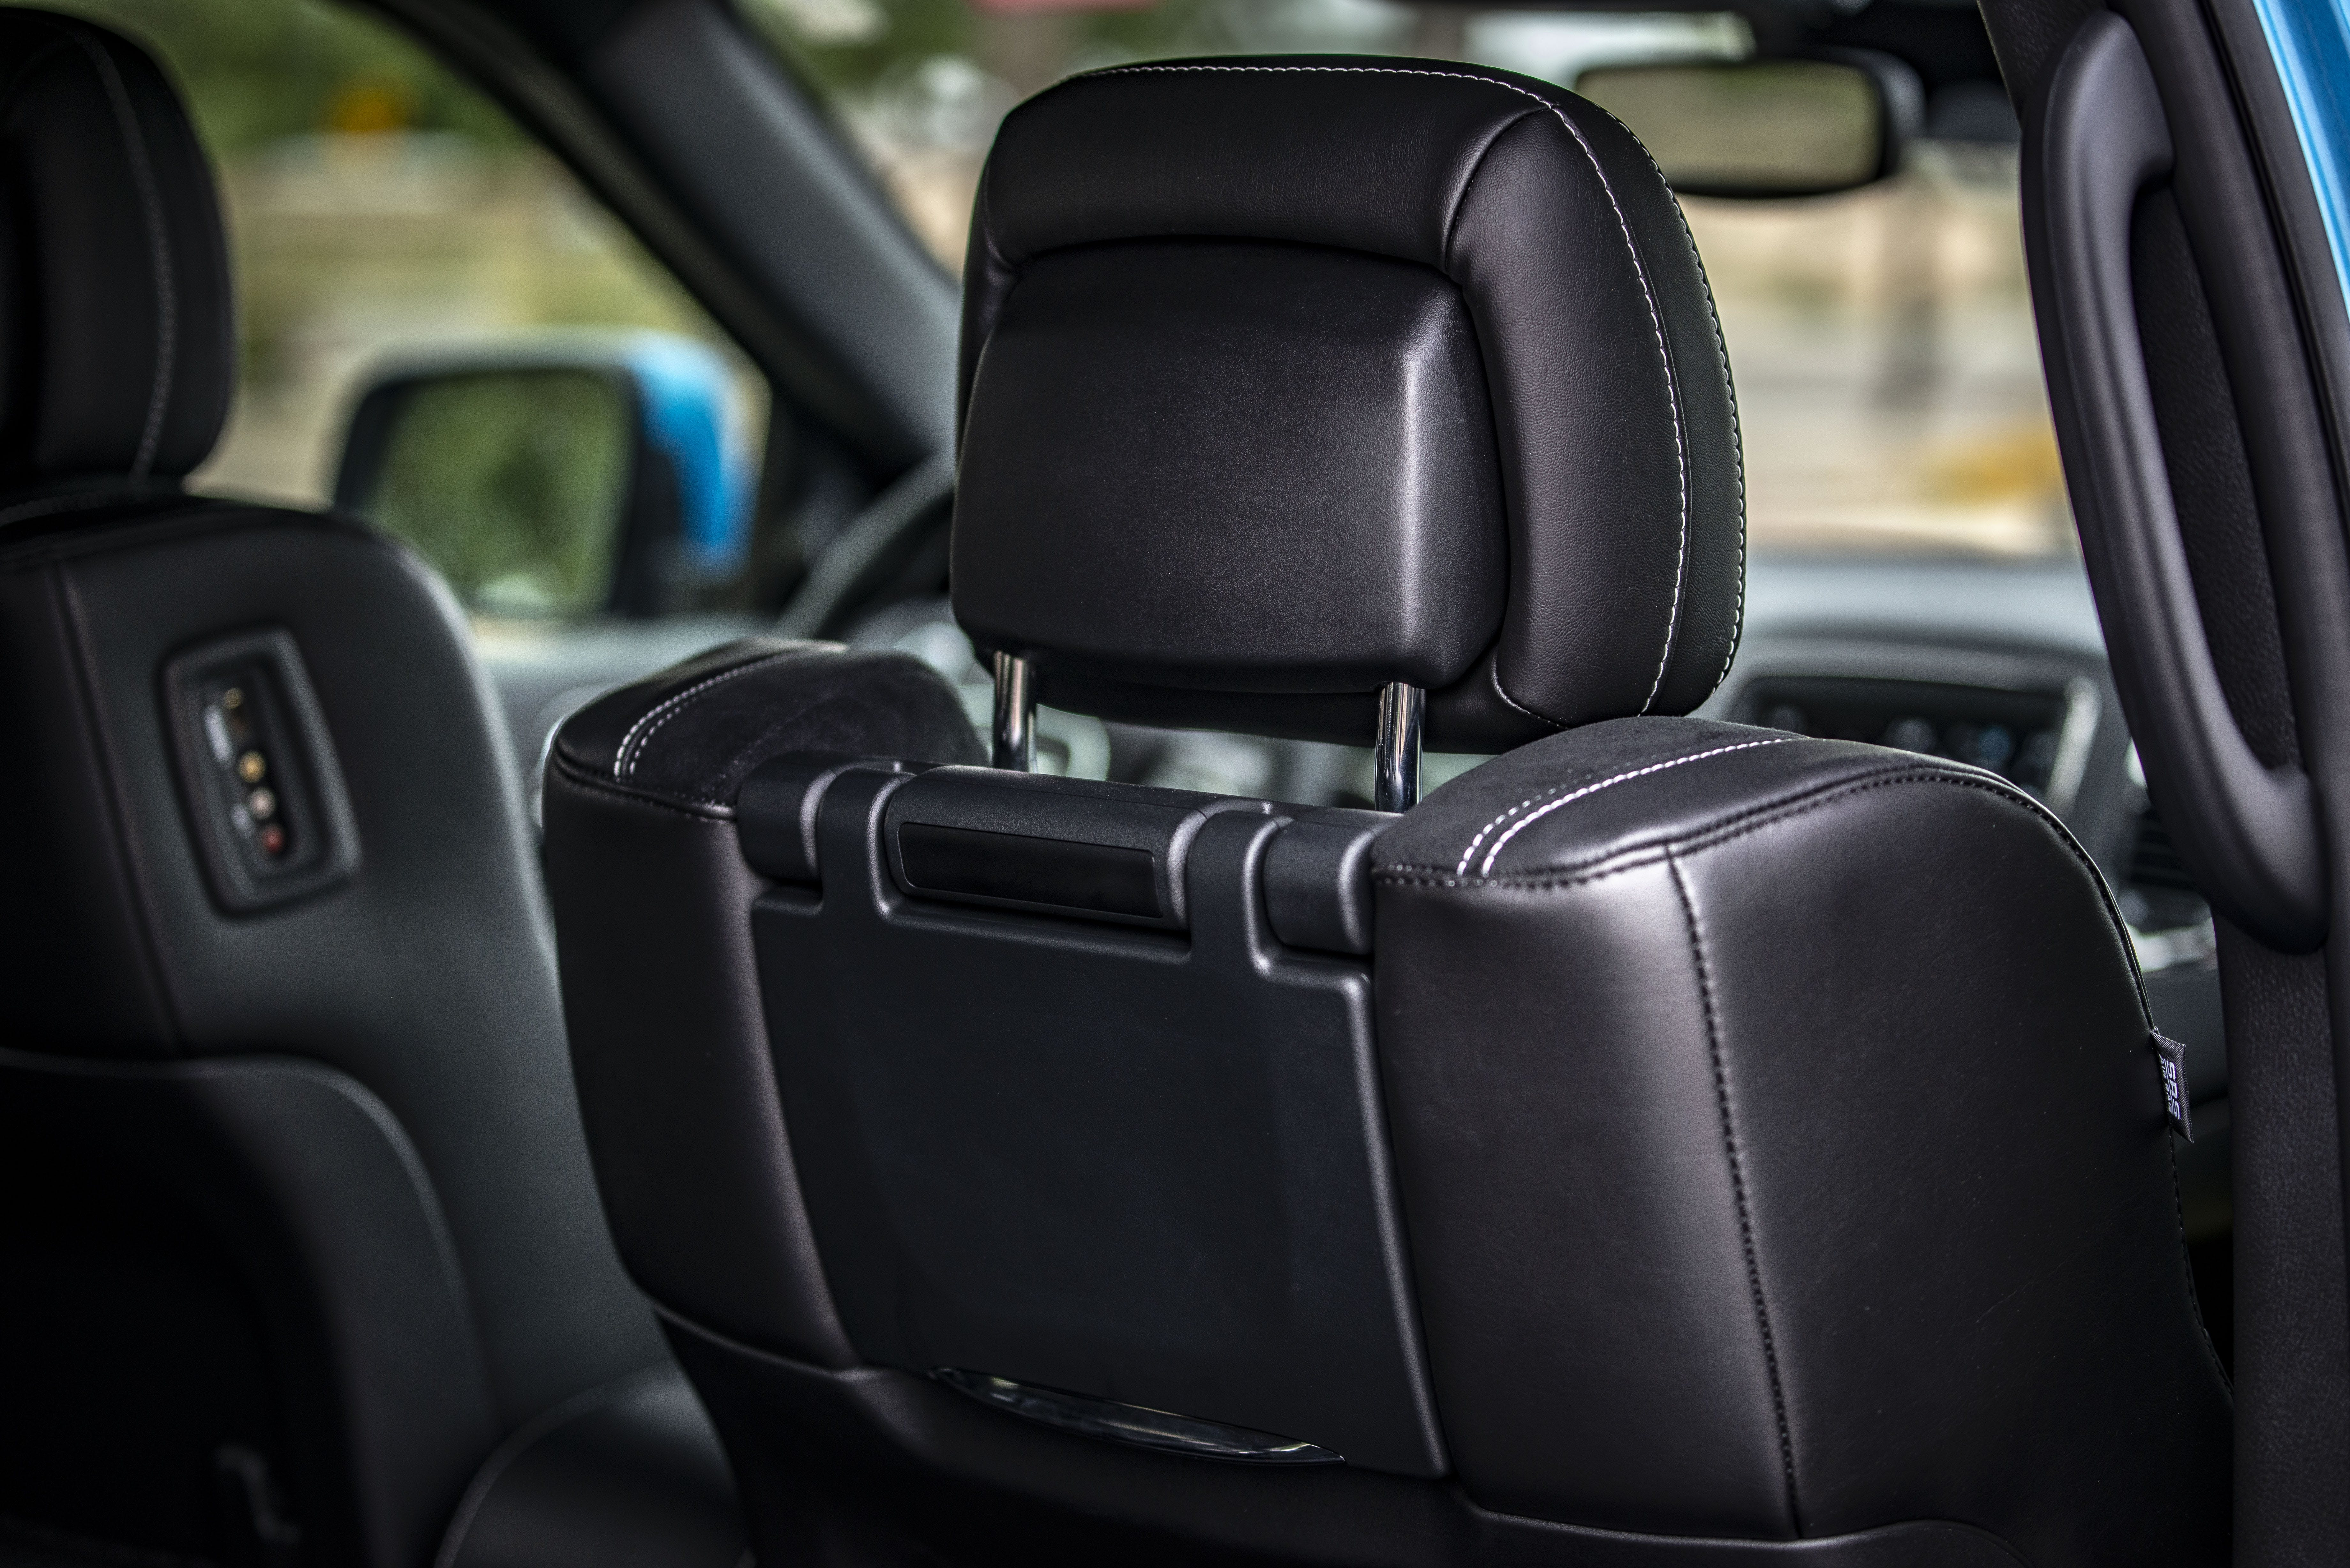 Close Up Photo of Black Leather Car Seat